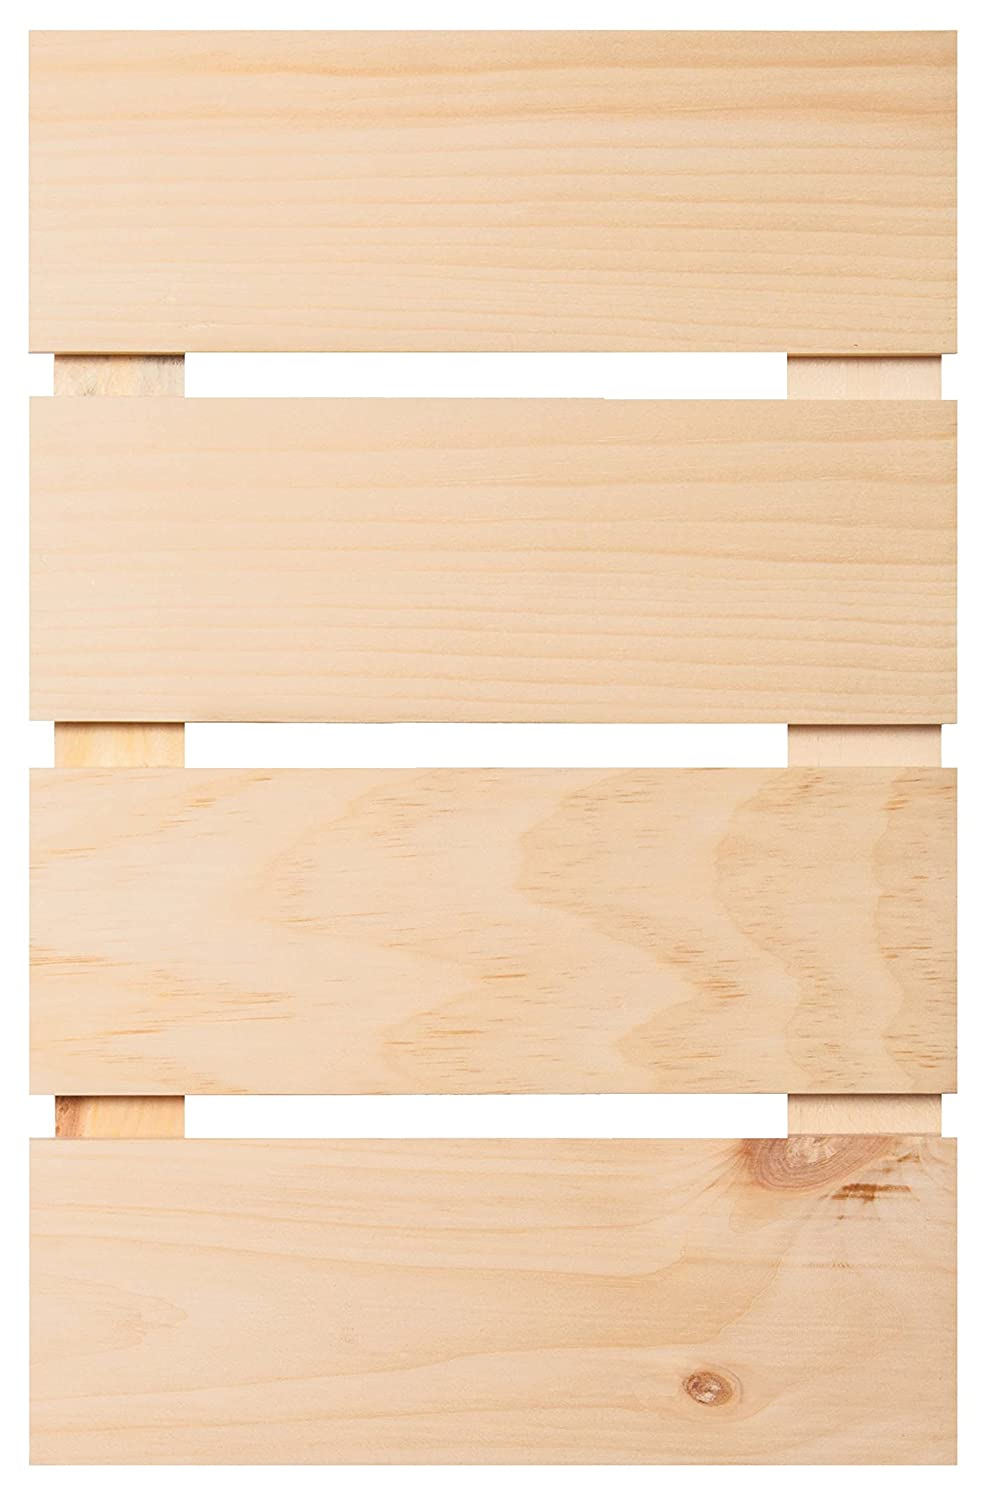 Natural Wood Finish 11.5 x 15.5 Inch Pine Wood Craft Pallet